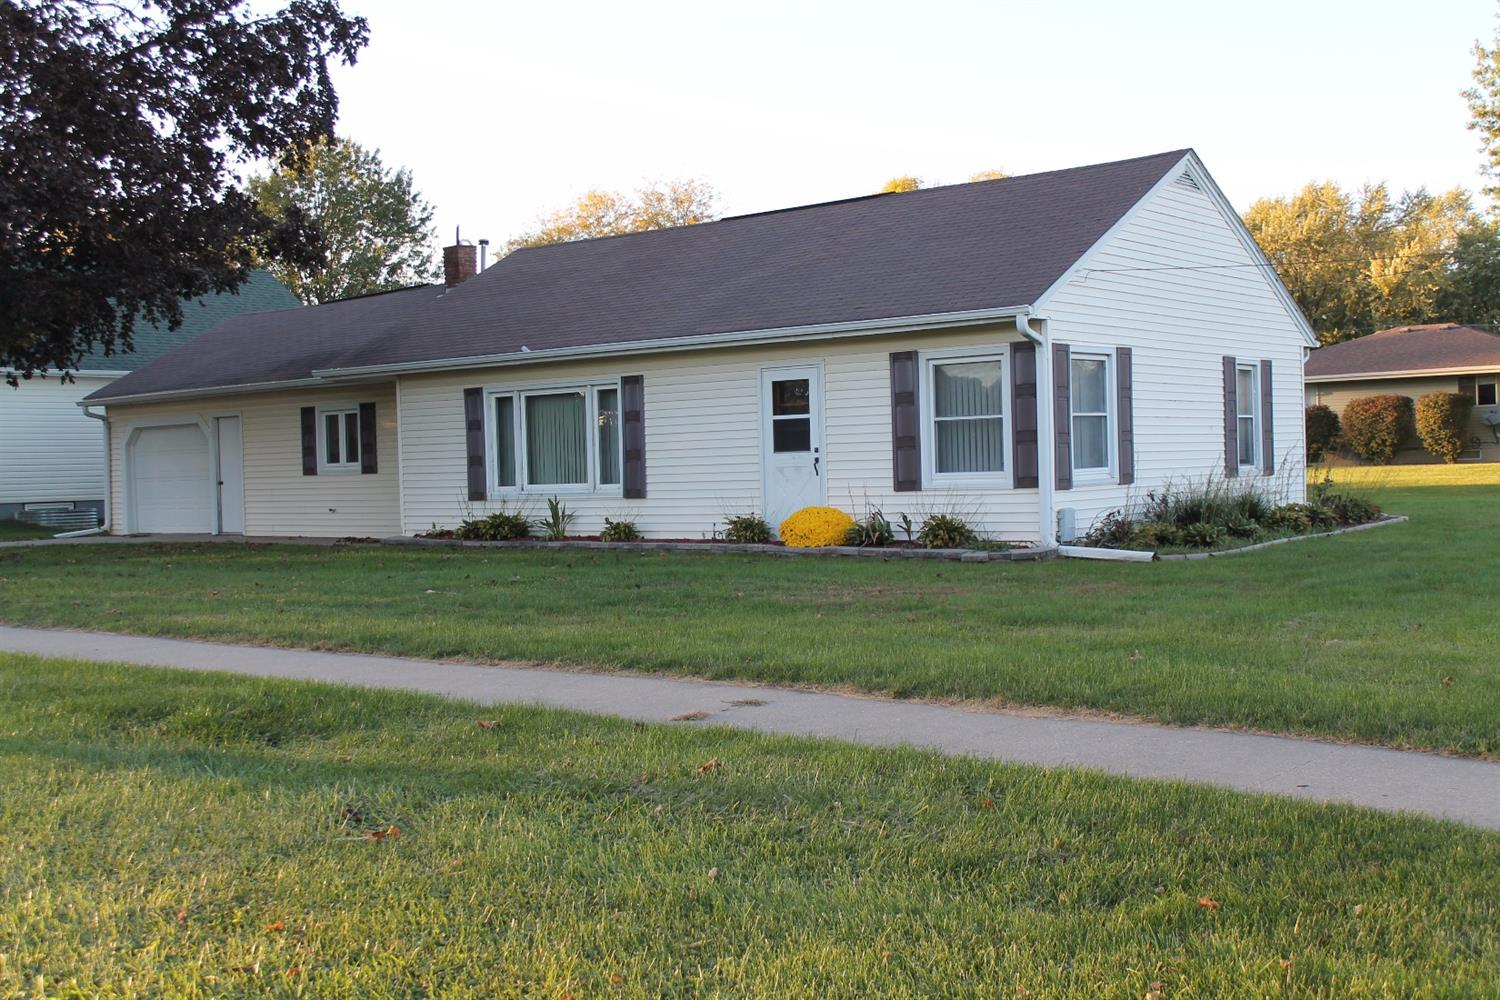 1849 7th Ave, Grinnell, IA 50112